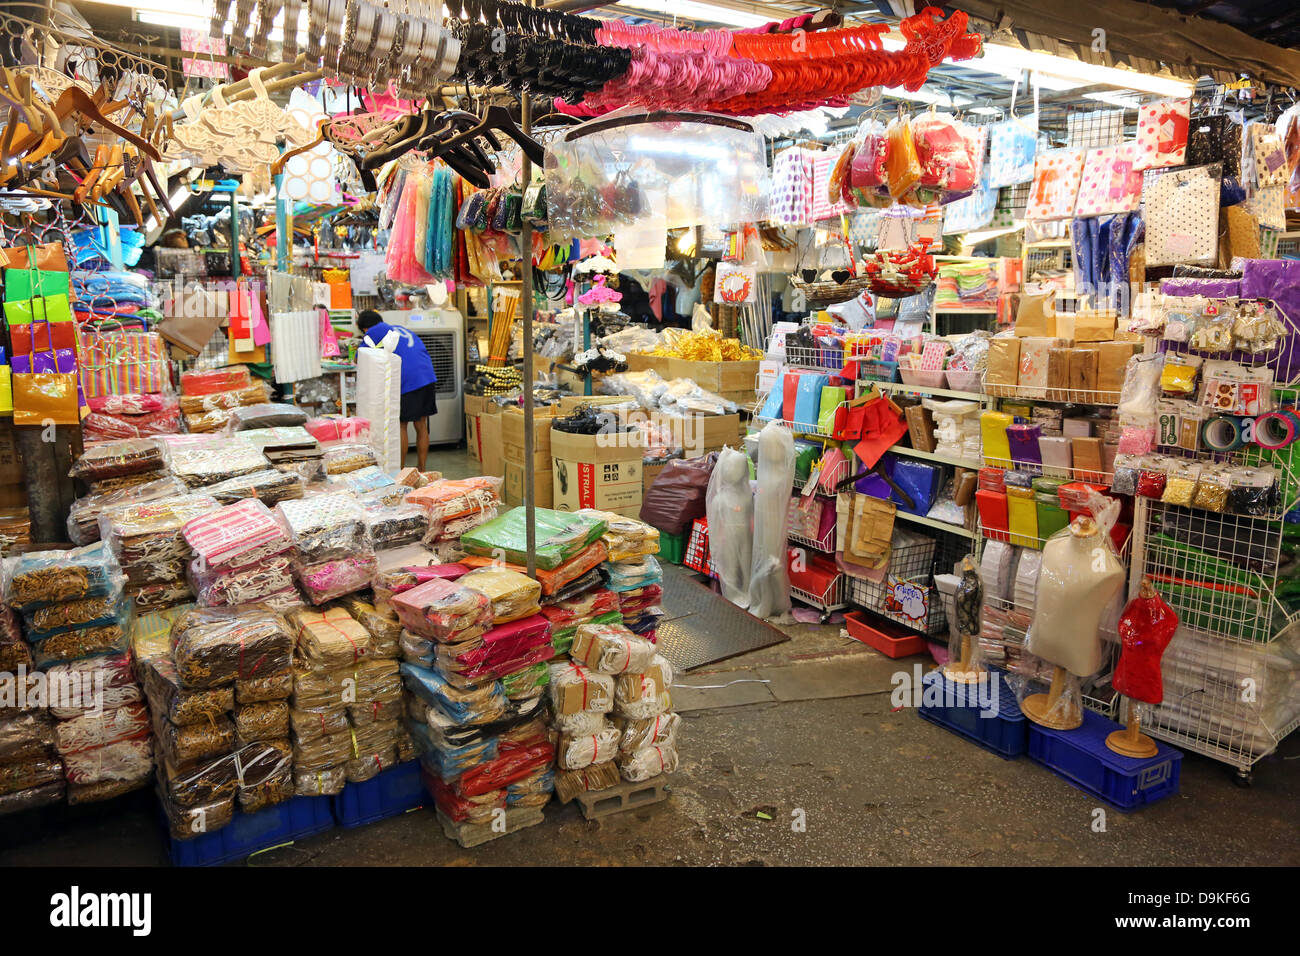 Stalls at Chatuchak Weekend Market, the largest market in Thailand, Bangkok, Thailand - Stock Image